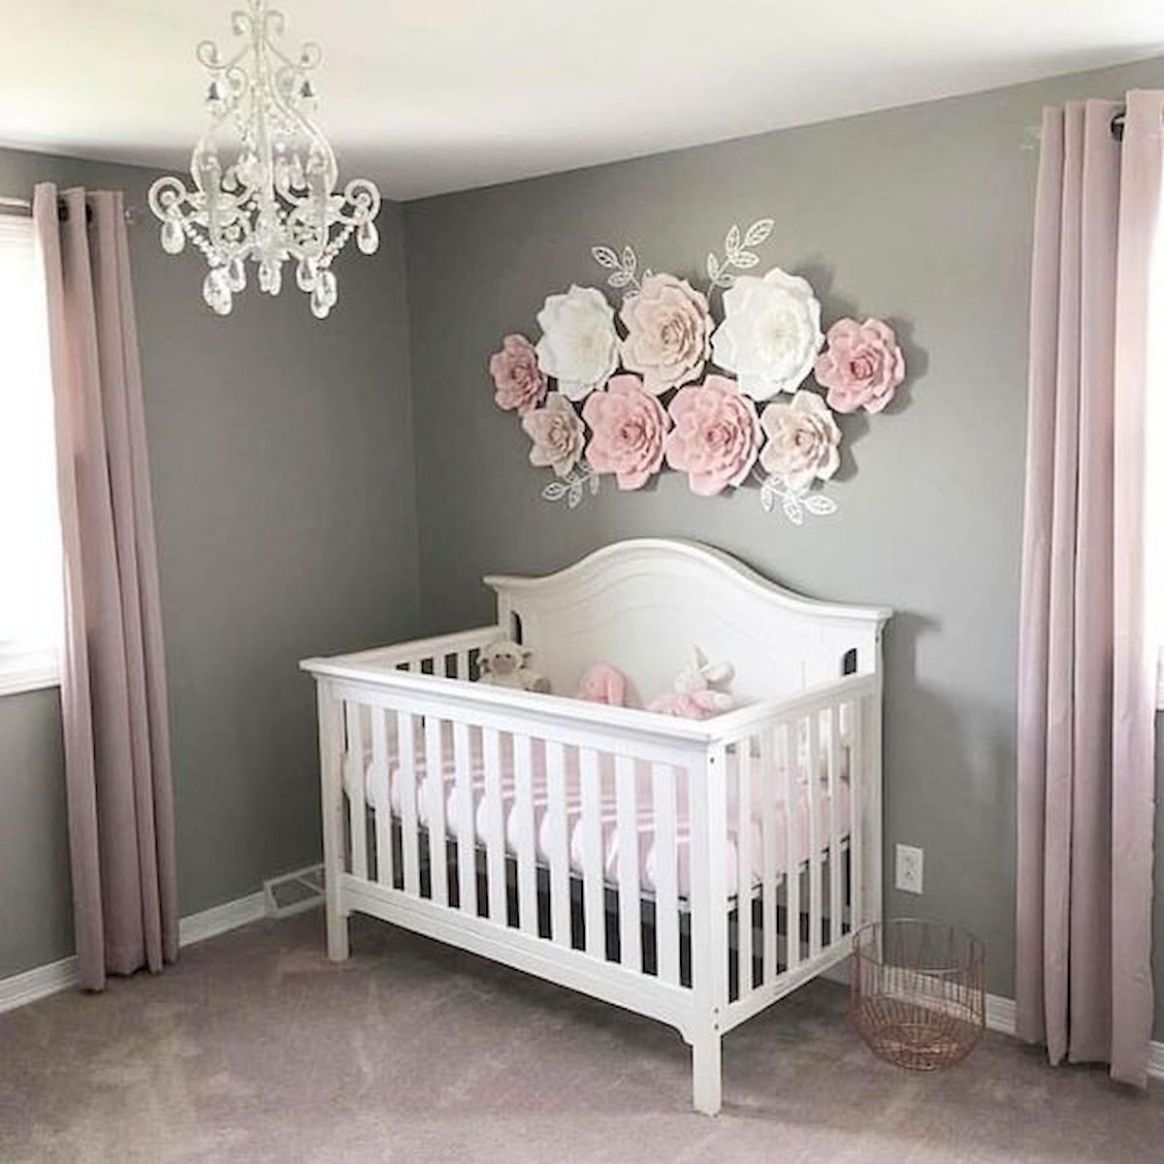 Pin by Jsmes Higgins on cfc | Baby girl nursery room, Baby girl ..